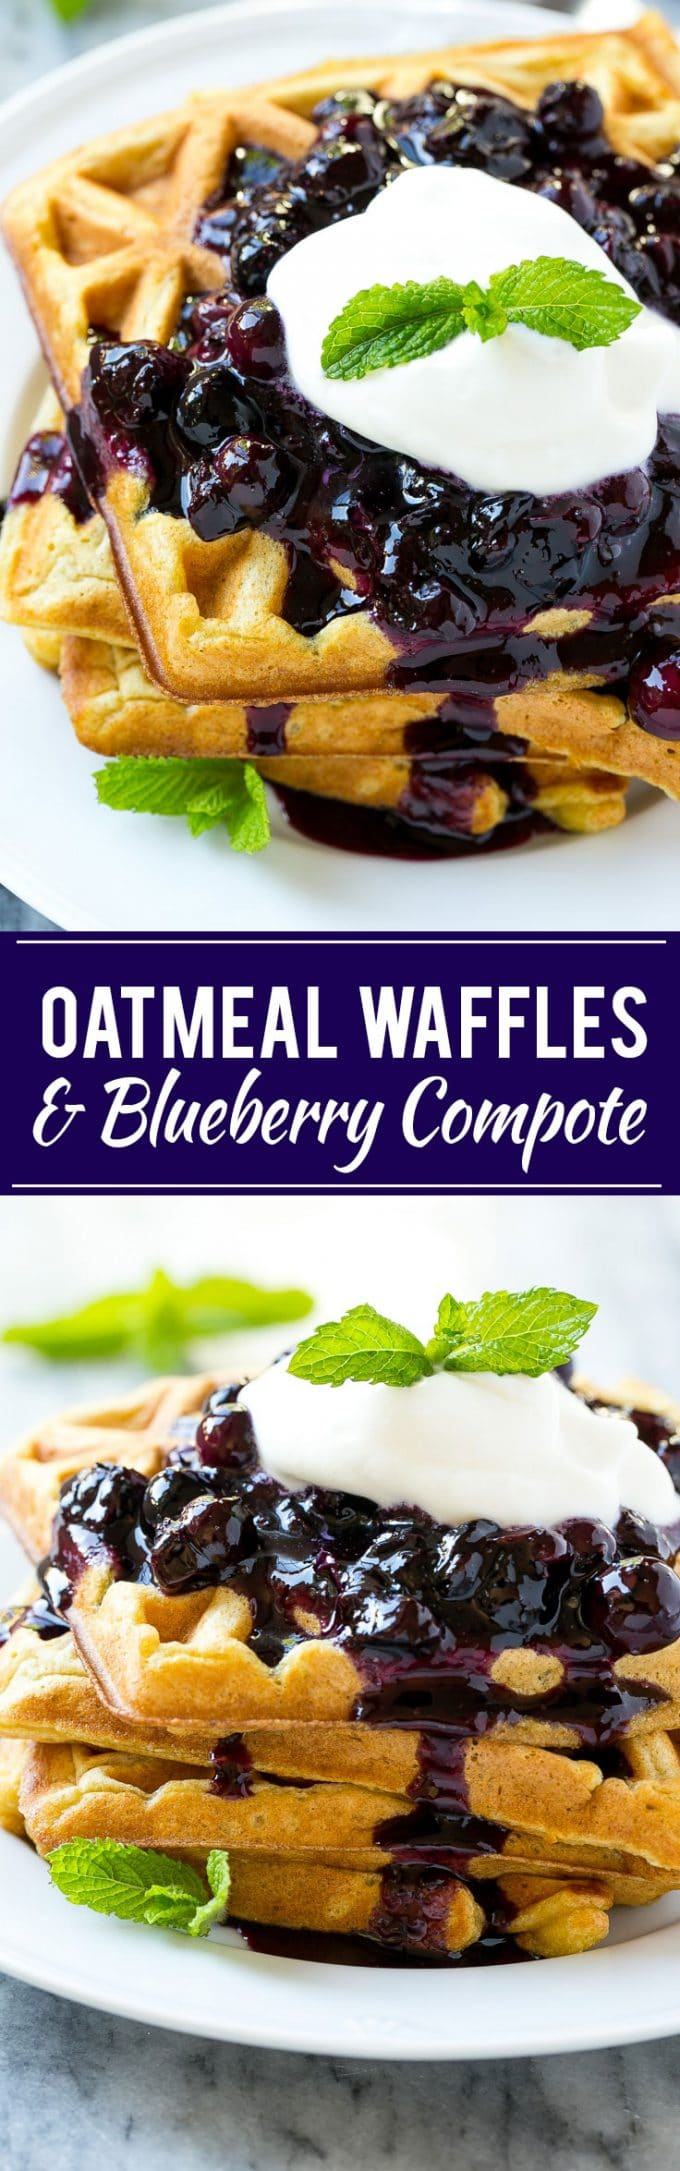 Oatmeal Waffles with Blueberry Compote Recipe   Easy Oatmeal Waffles   Best Oatmeal Waffles   Blueberry Compote